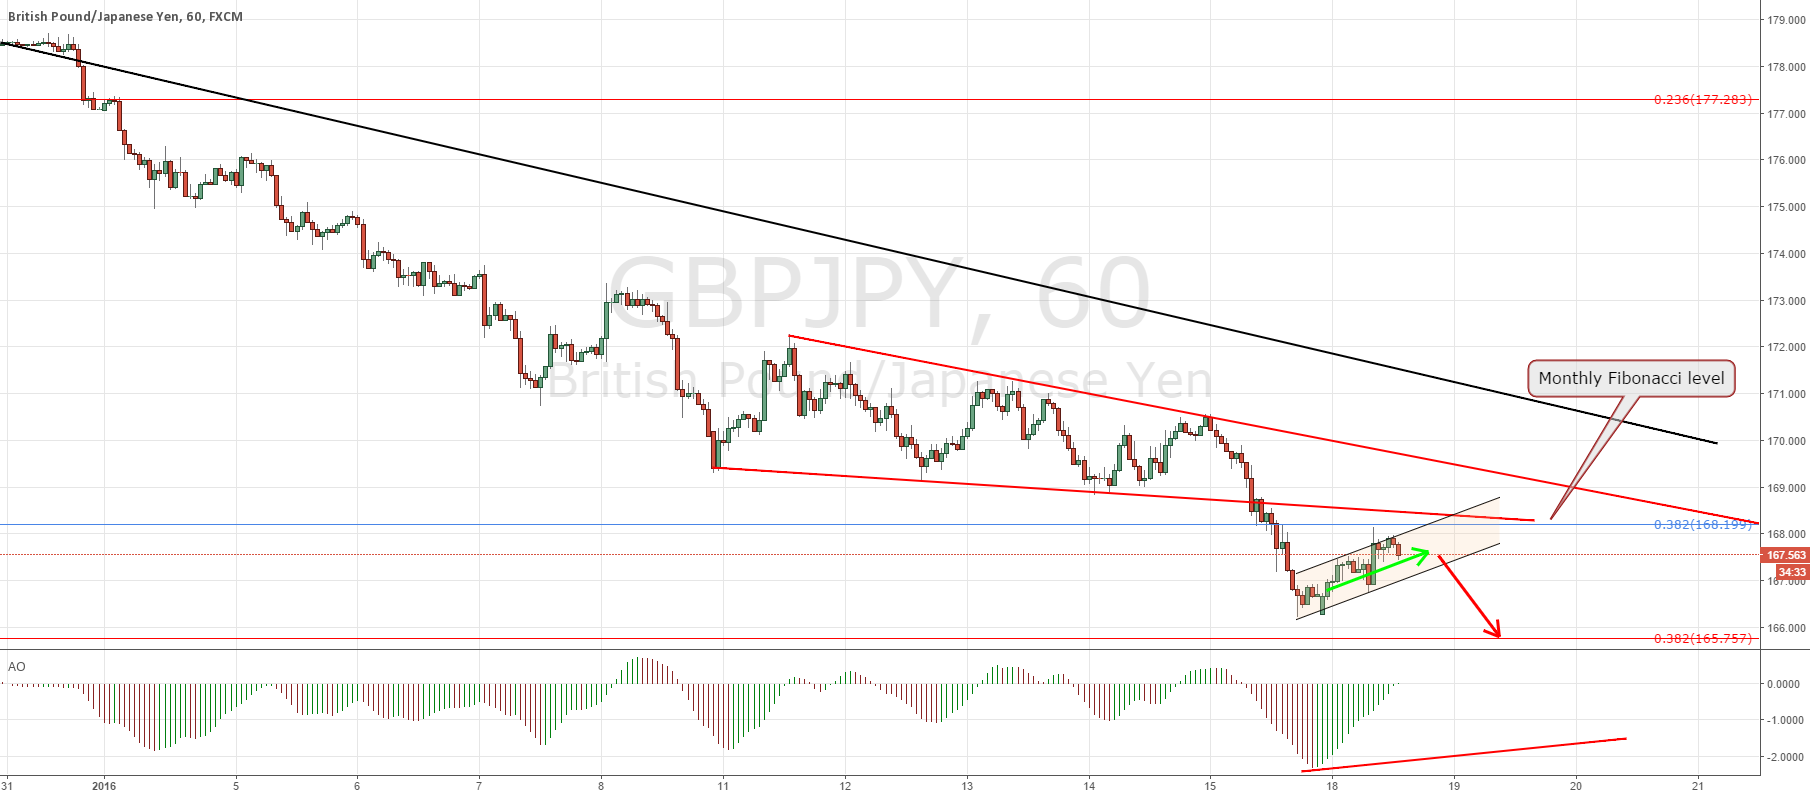 GBPJPY intra day sell opportunity